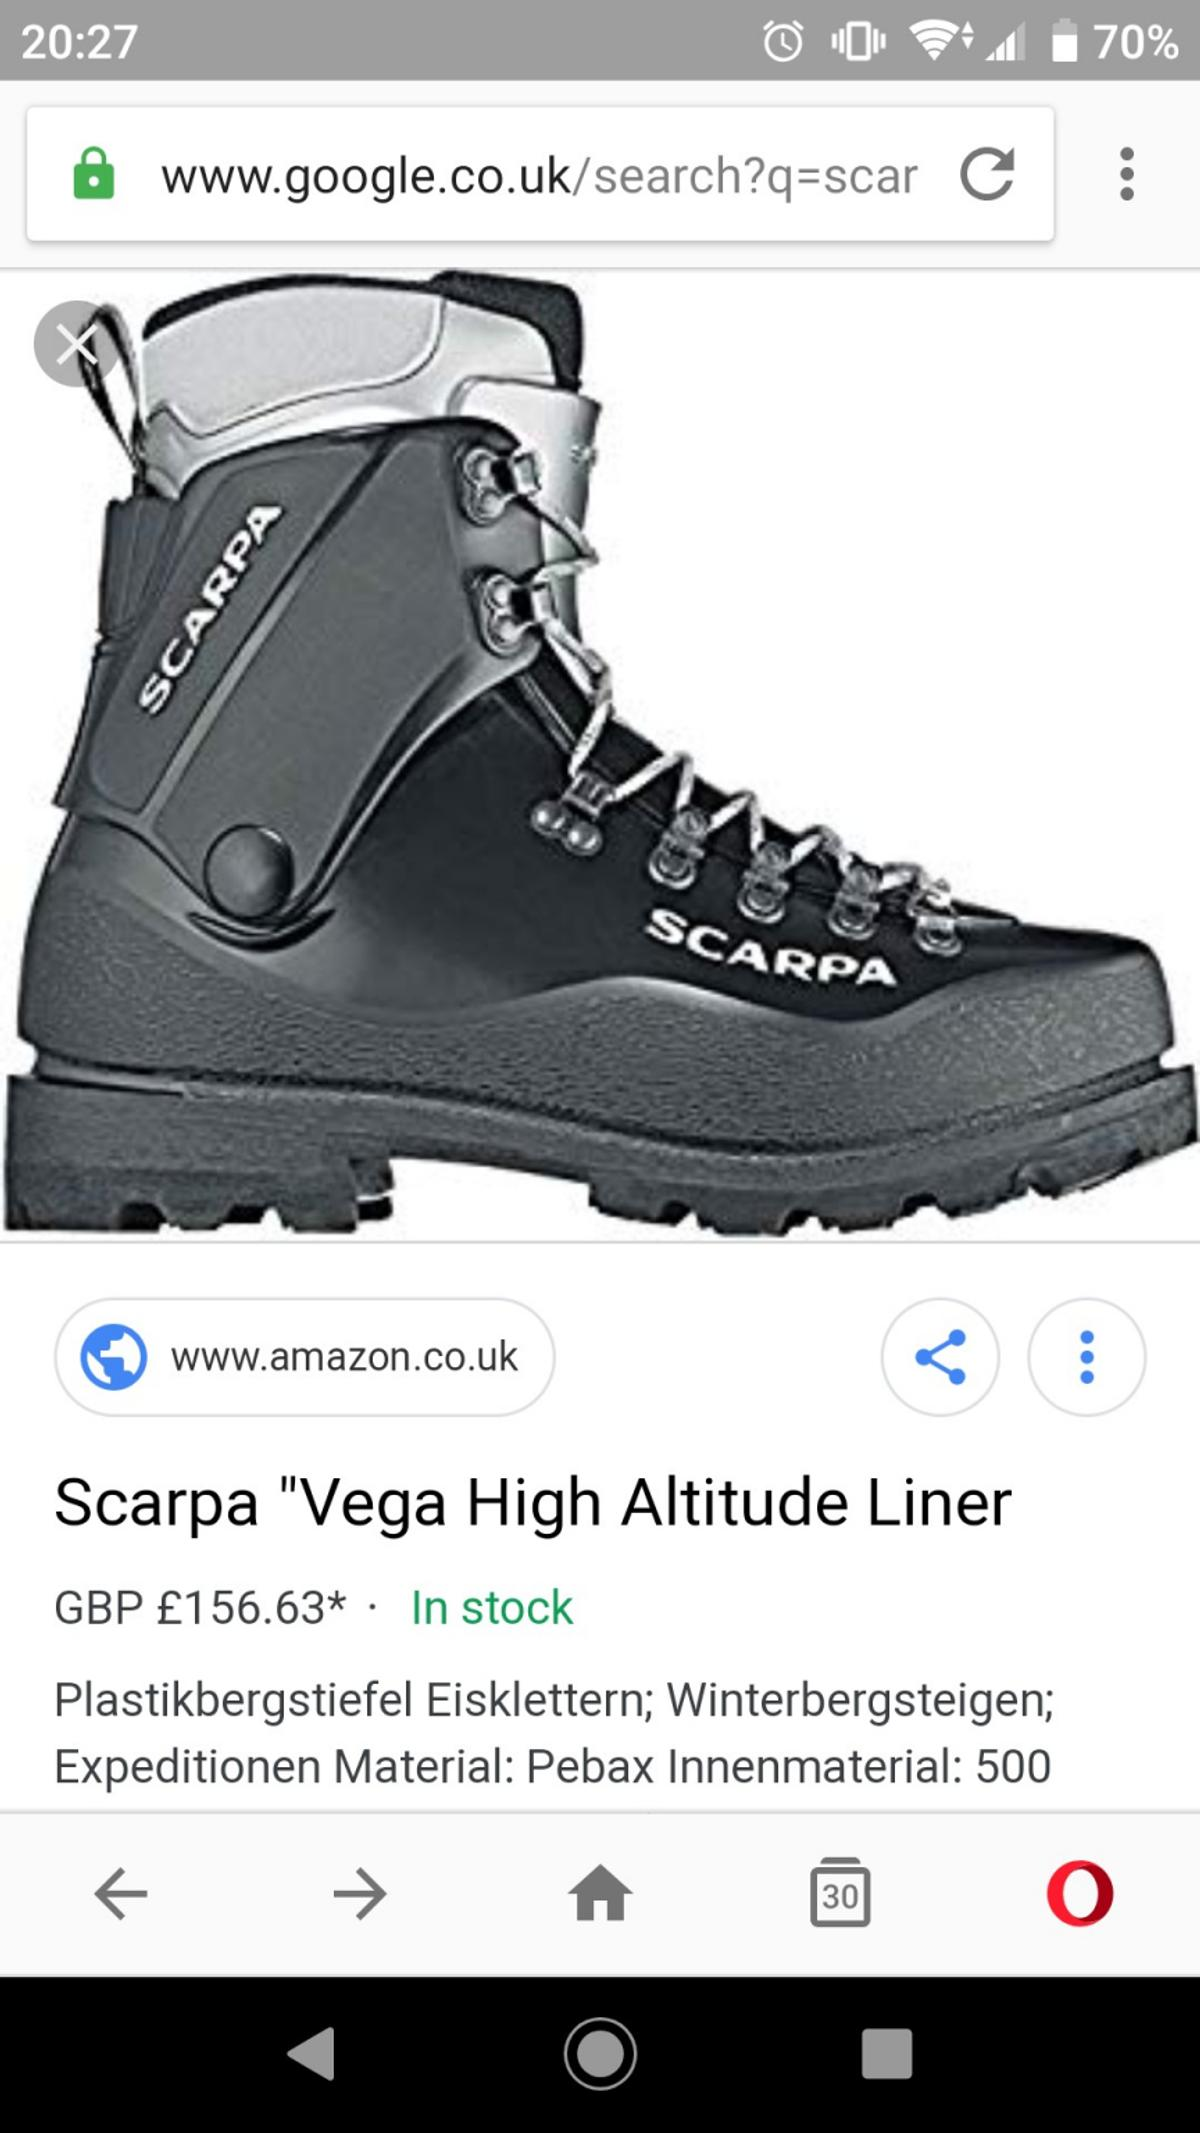 exclusive shoes 50% off san francisco Scarpa vega high altitude boots